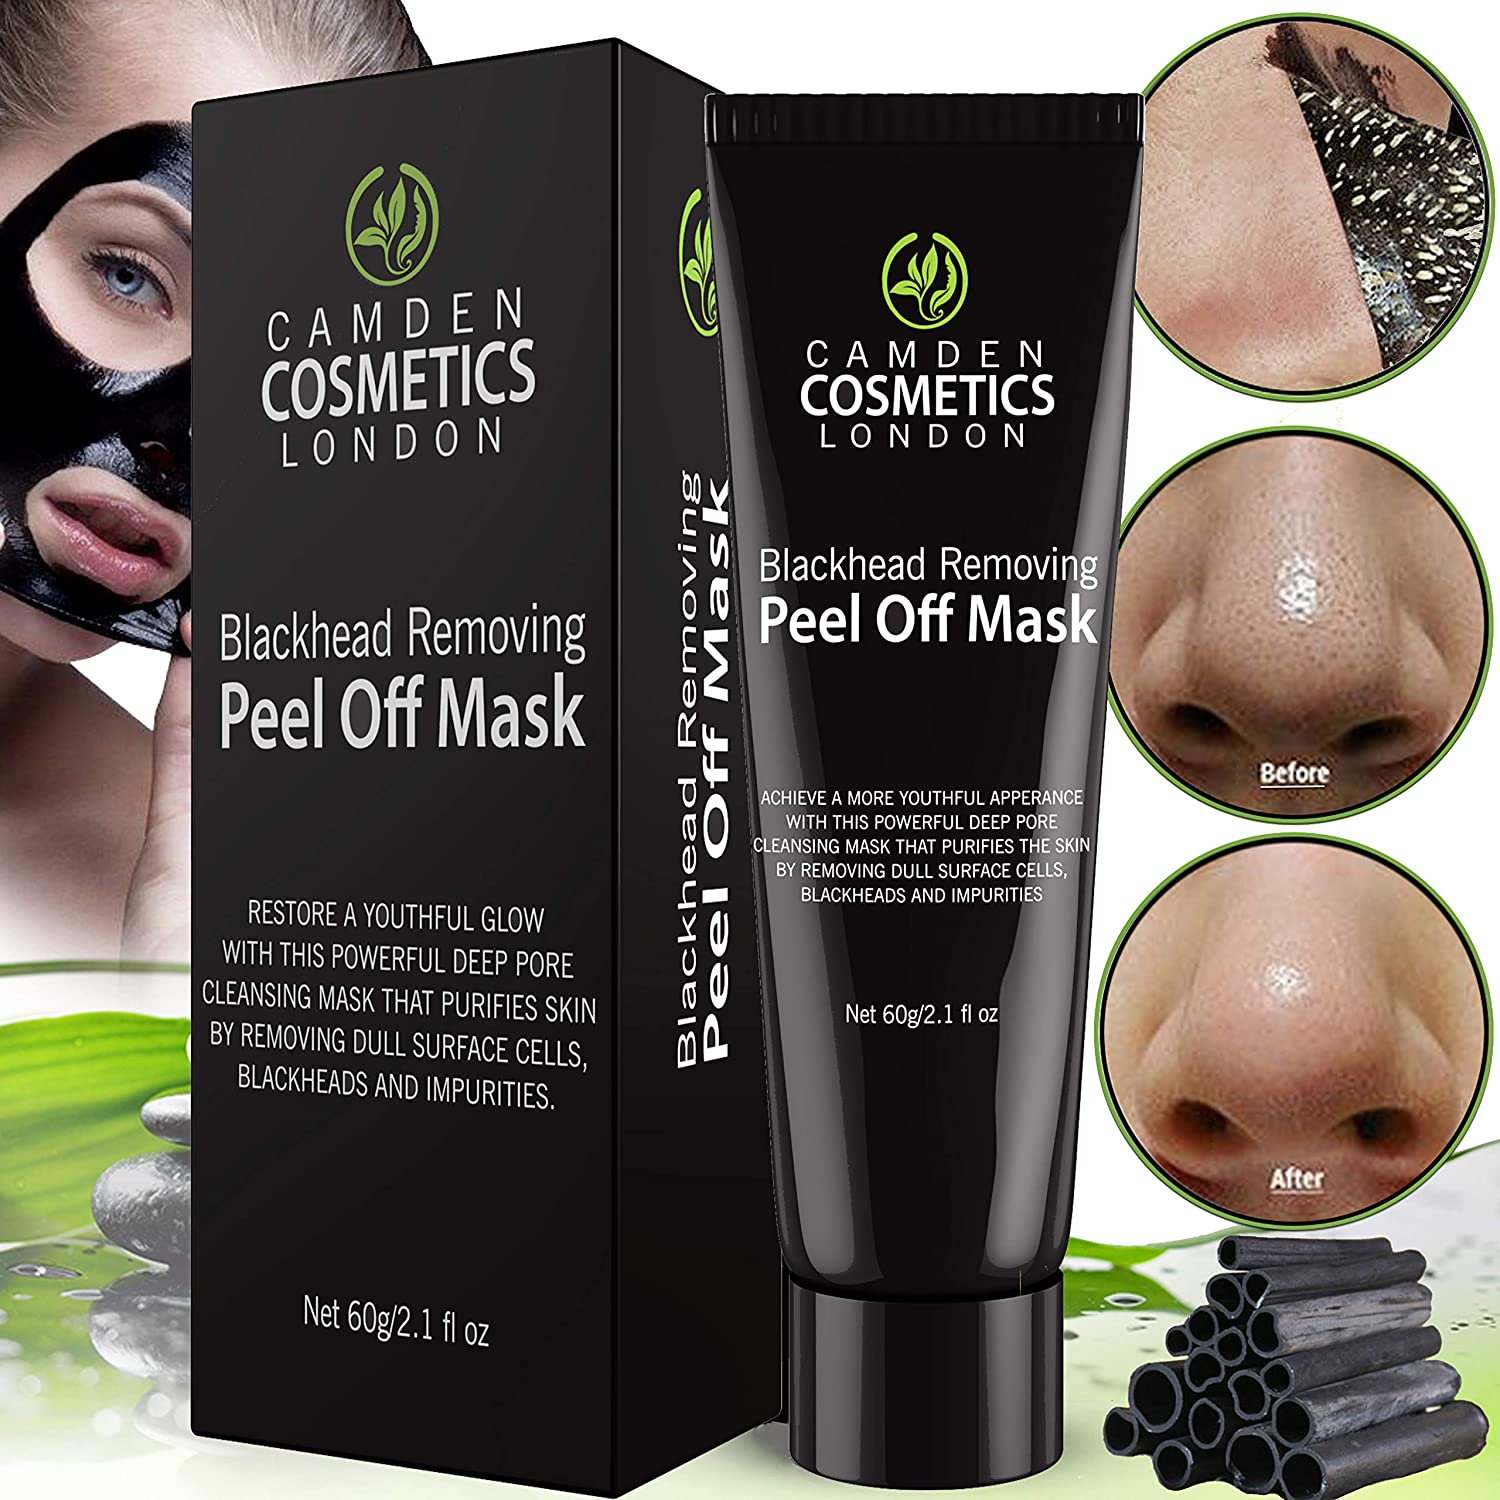 b6a8a0213505 PREMIUM Natural Black Charcoal Face Mask - SALE NOW ON! Blackhead Remover  Mask 60 g - Blackhead Mask - Peel Off Face Masks By Camden Cosmetics - ...